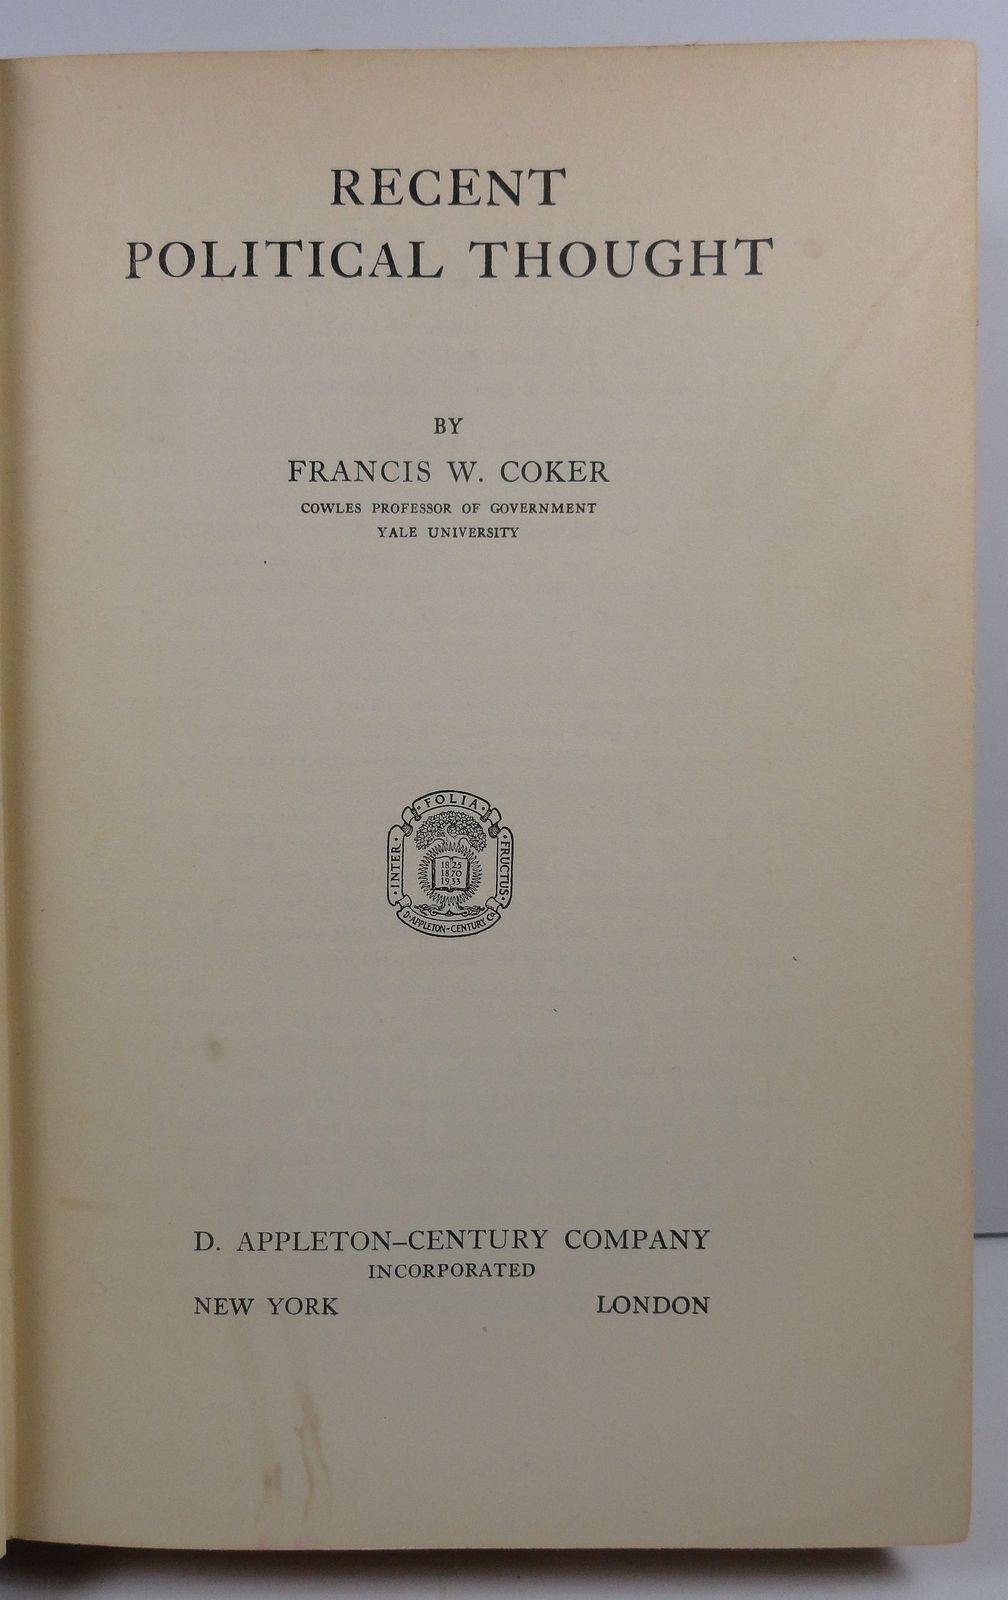 Recent Political Thought by Francis W. Coker 1934